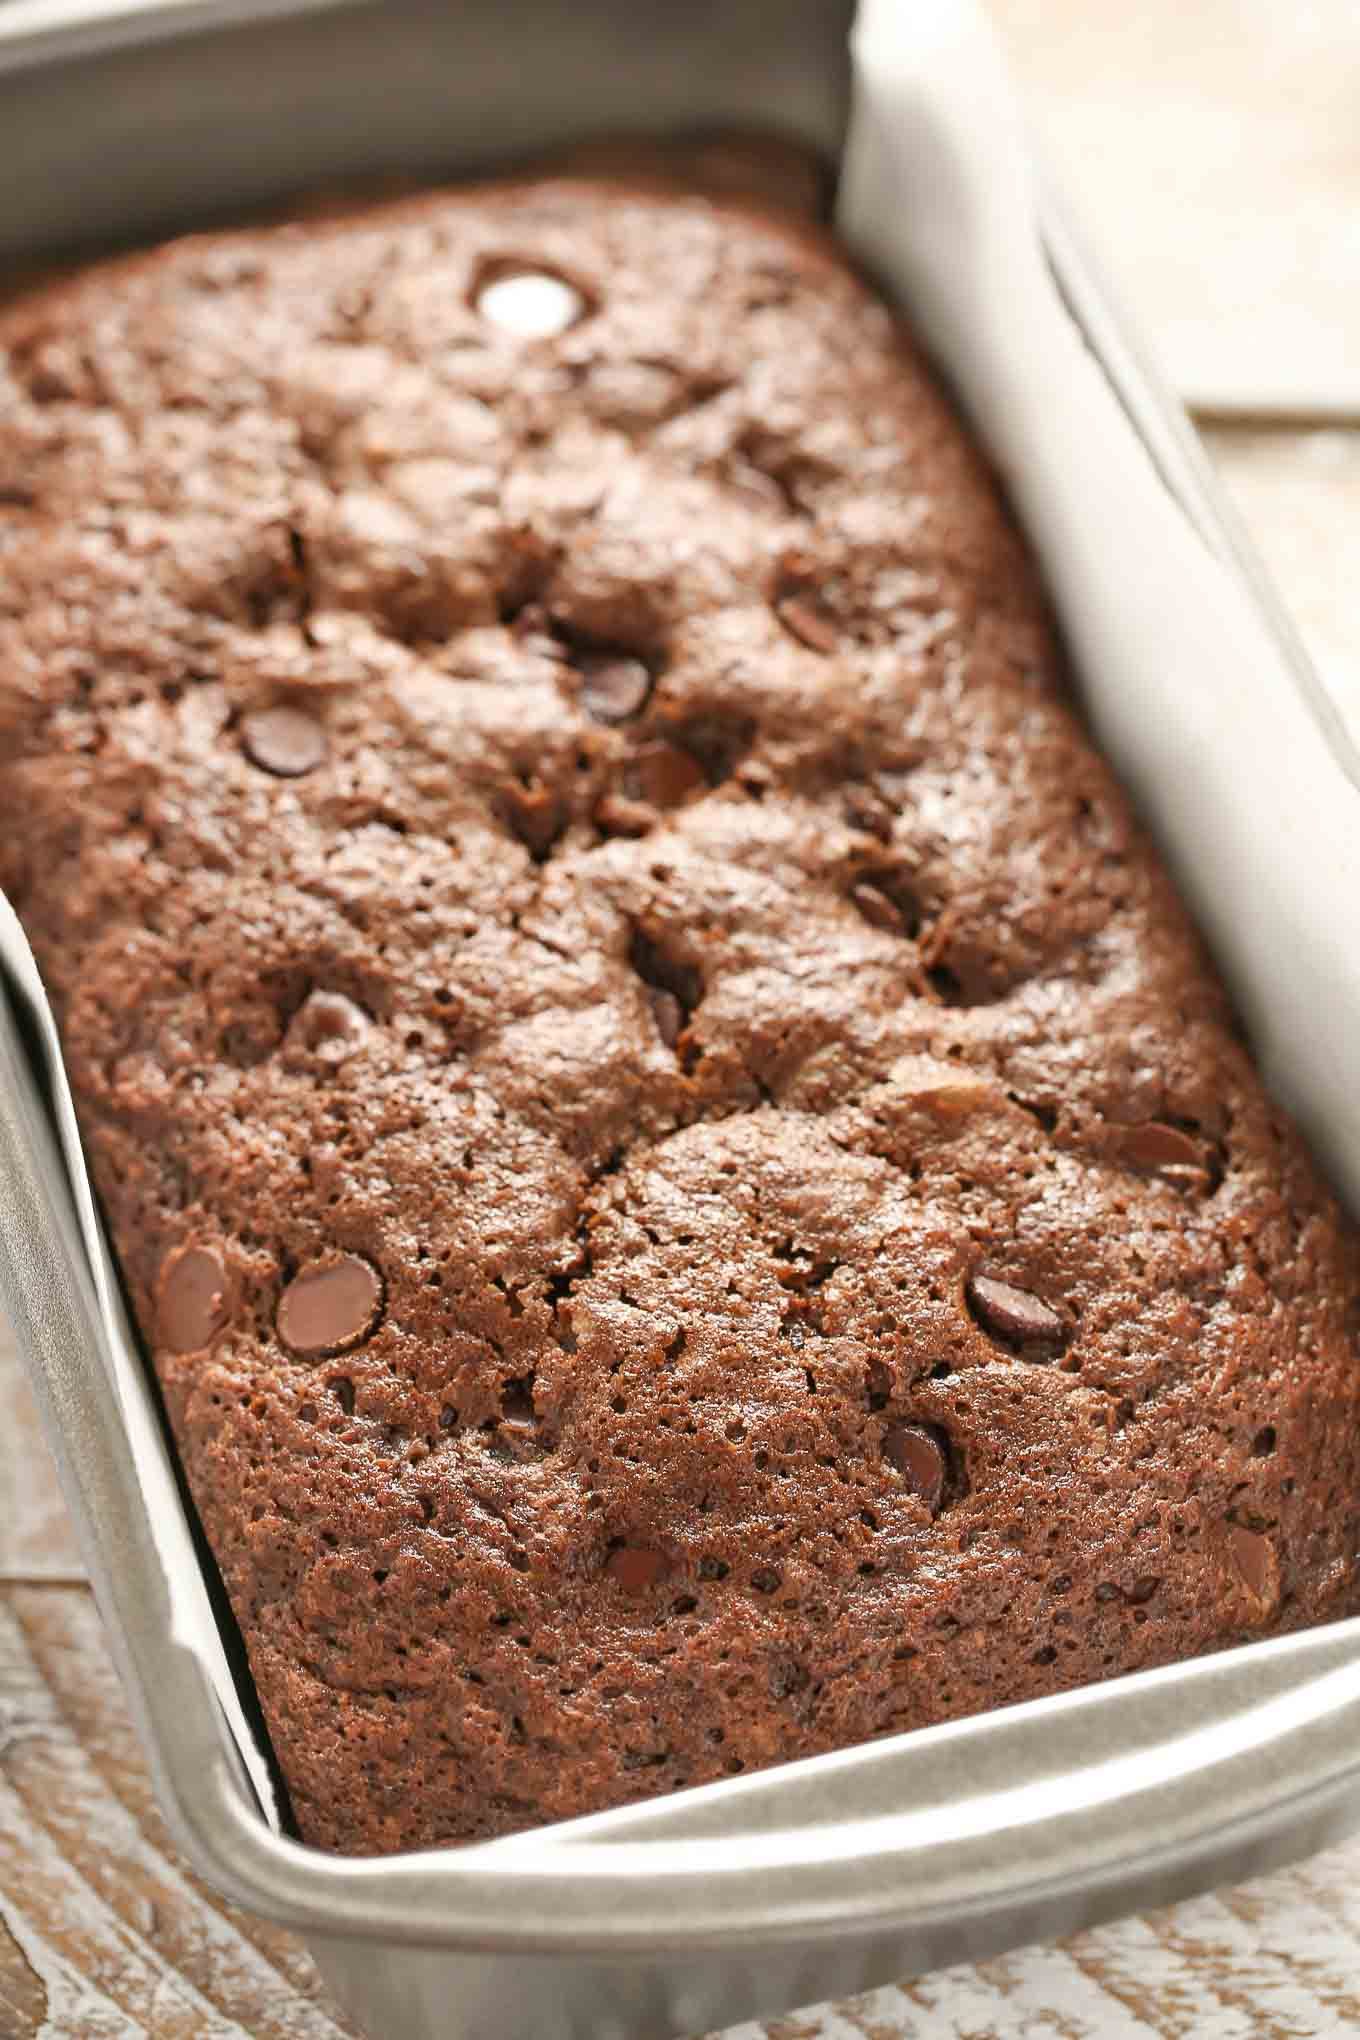 This DoubleChocolate Zucchini Bread is incredibly rich, moist, fudgy, and loaded with chocolate chips!